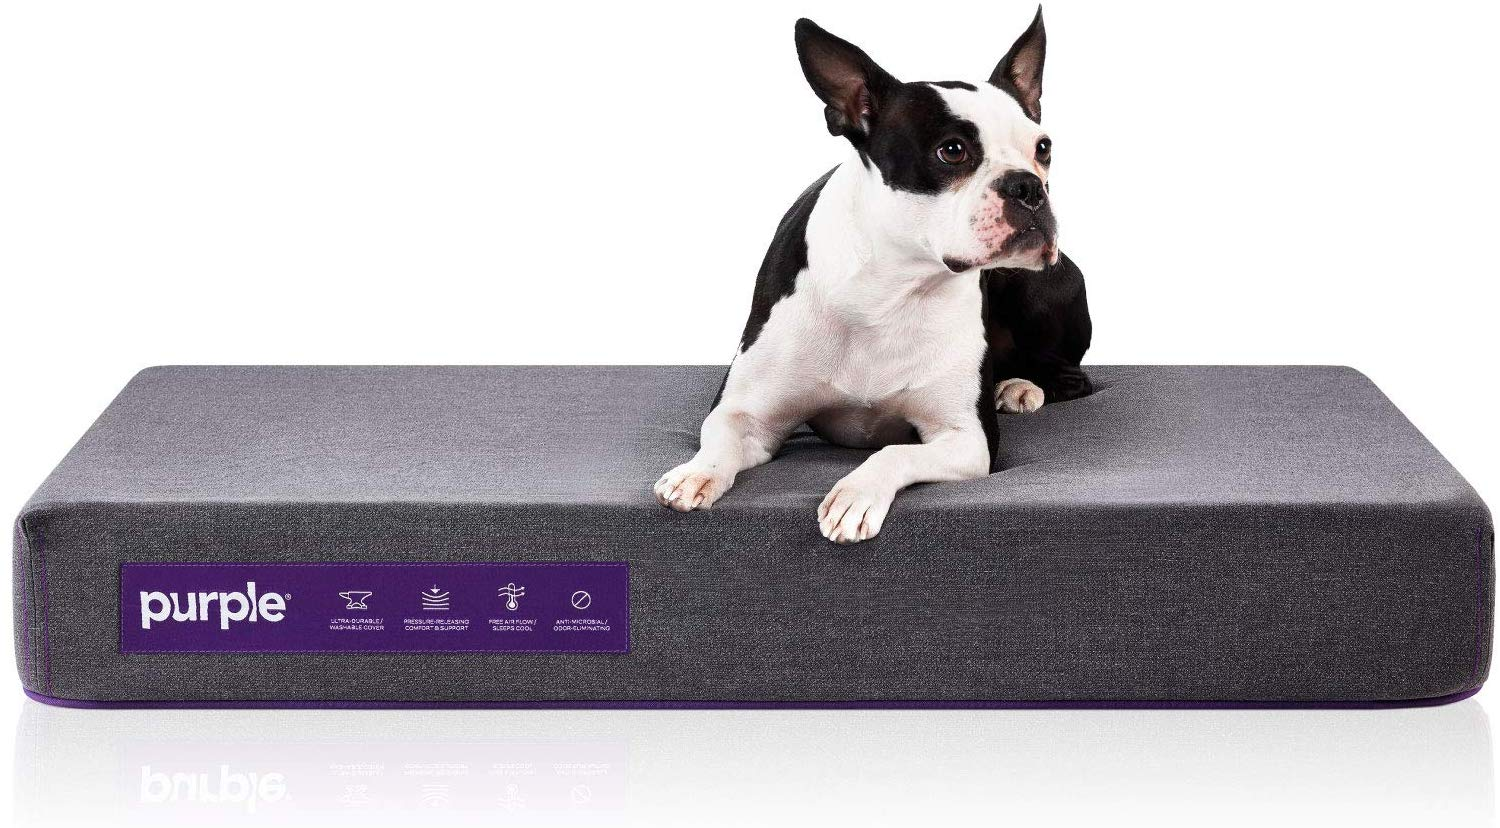 The-Purple-Pet-Bed